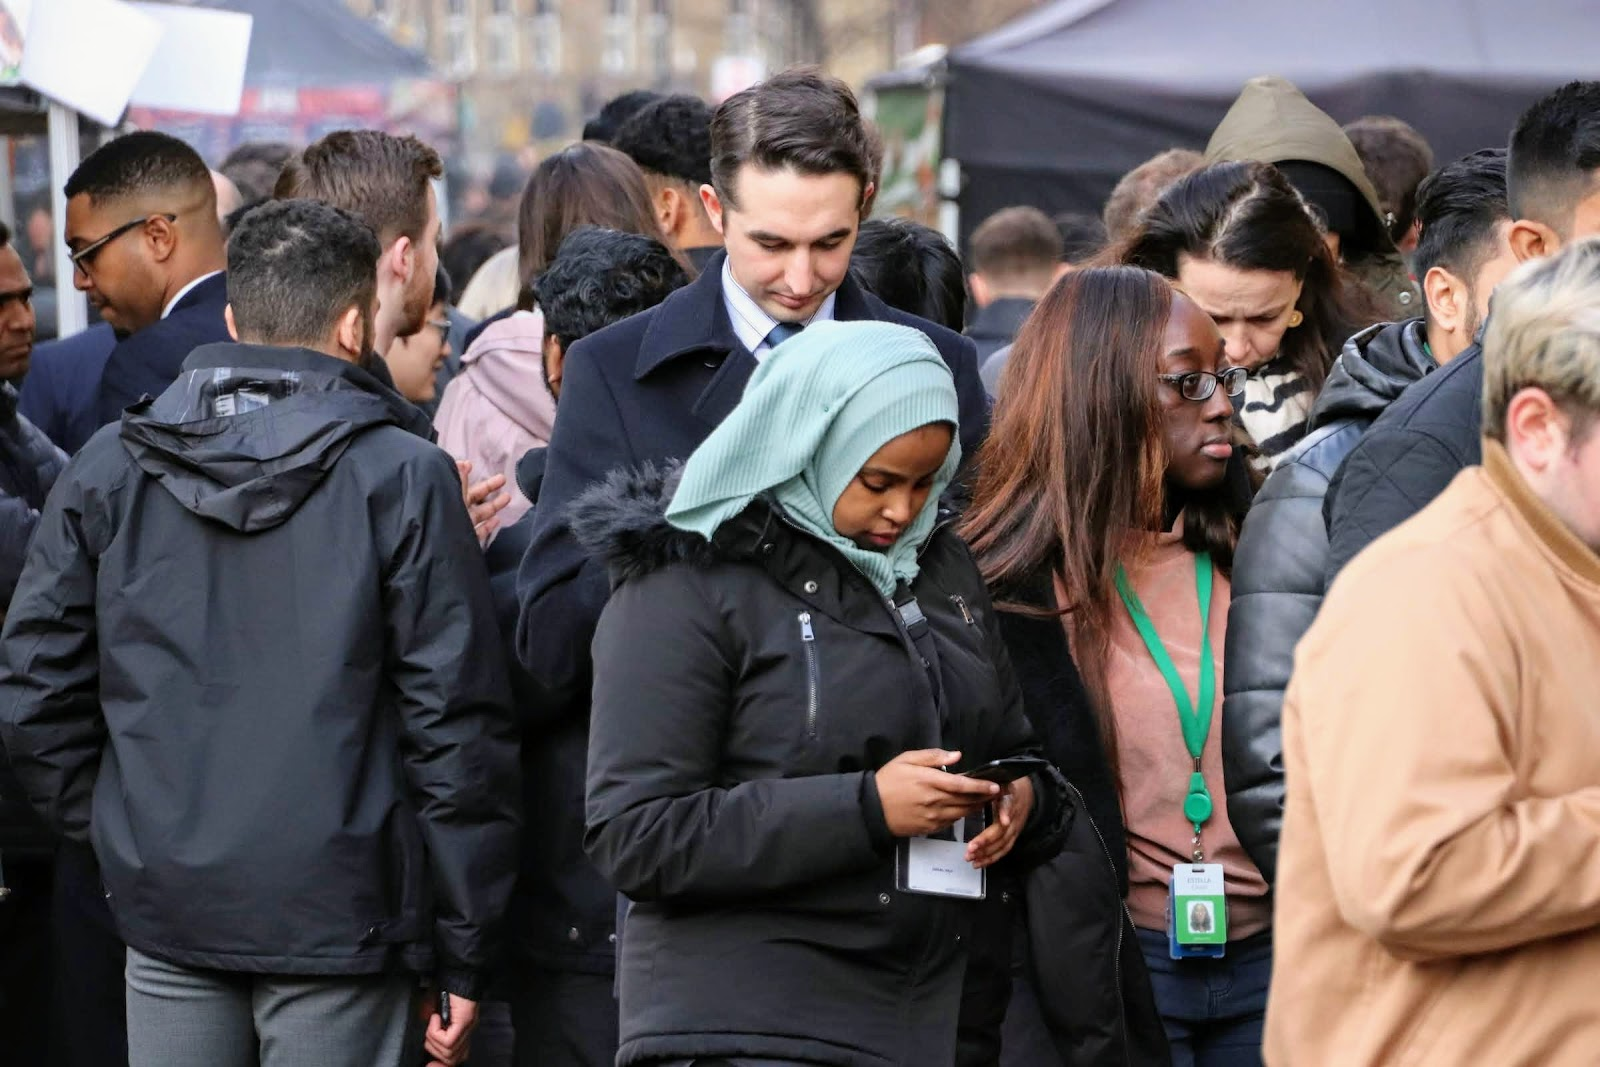 A crowd at a pop up food market wiaiting for their lunch. They are all looking down at their mobile phones